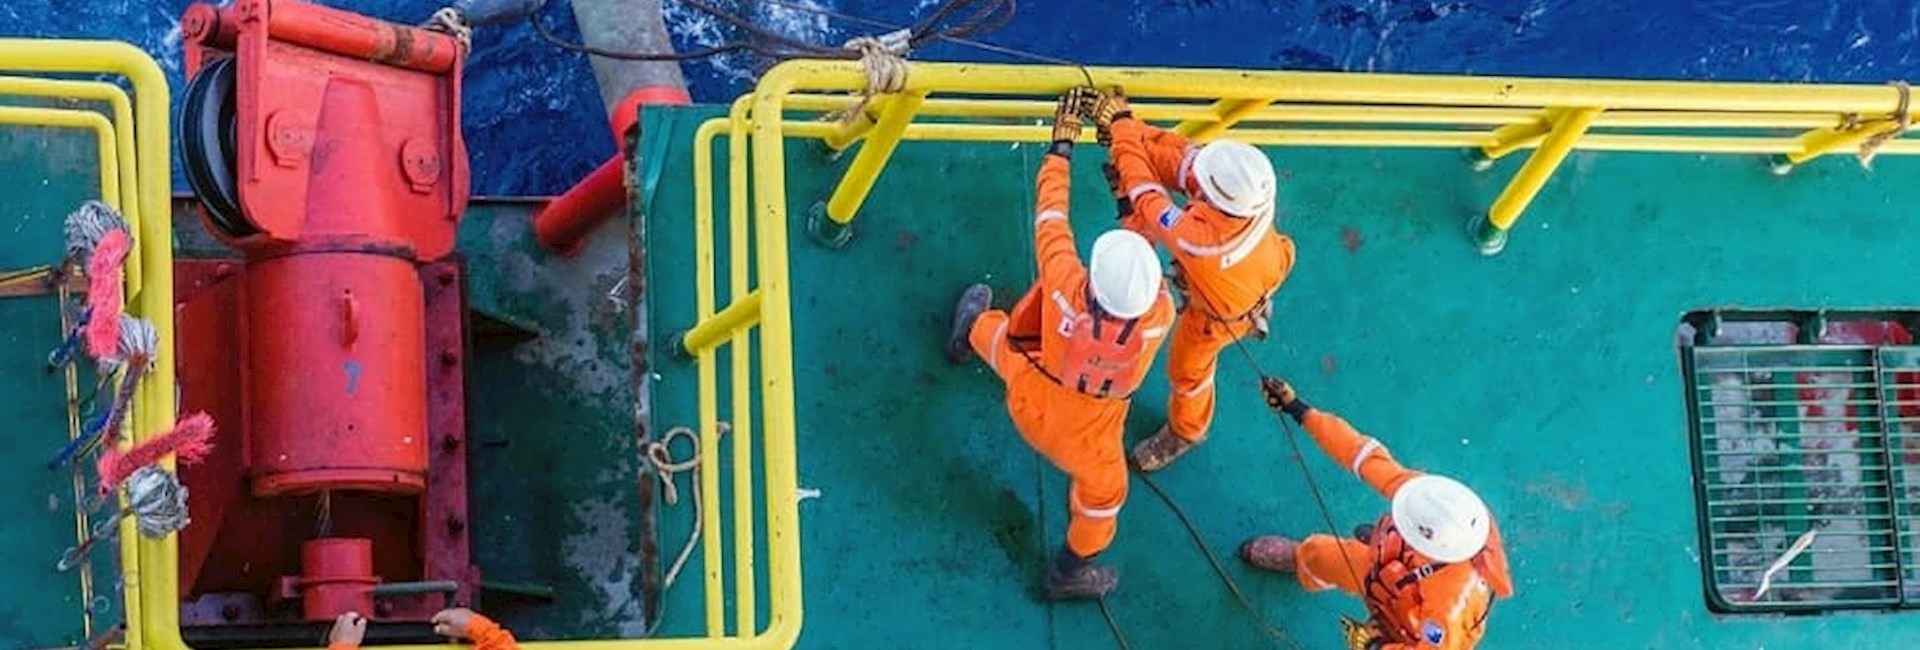 Workers on oil rig